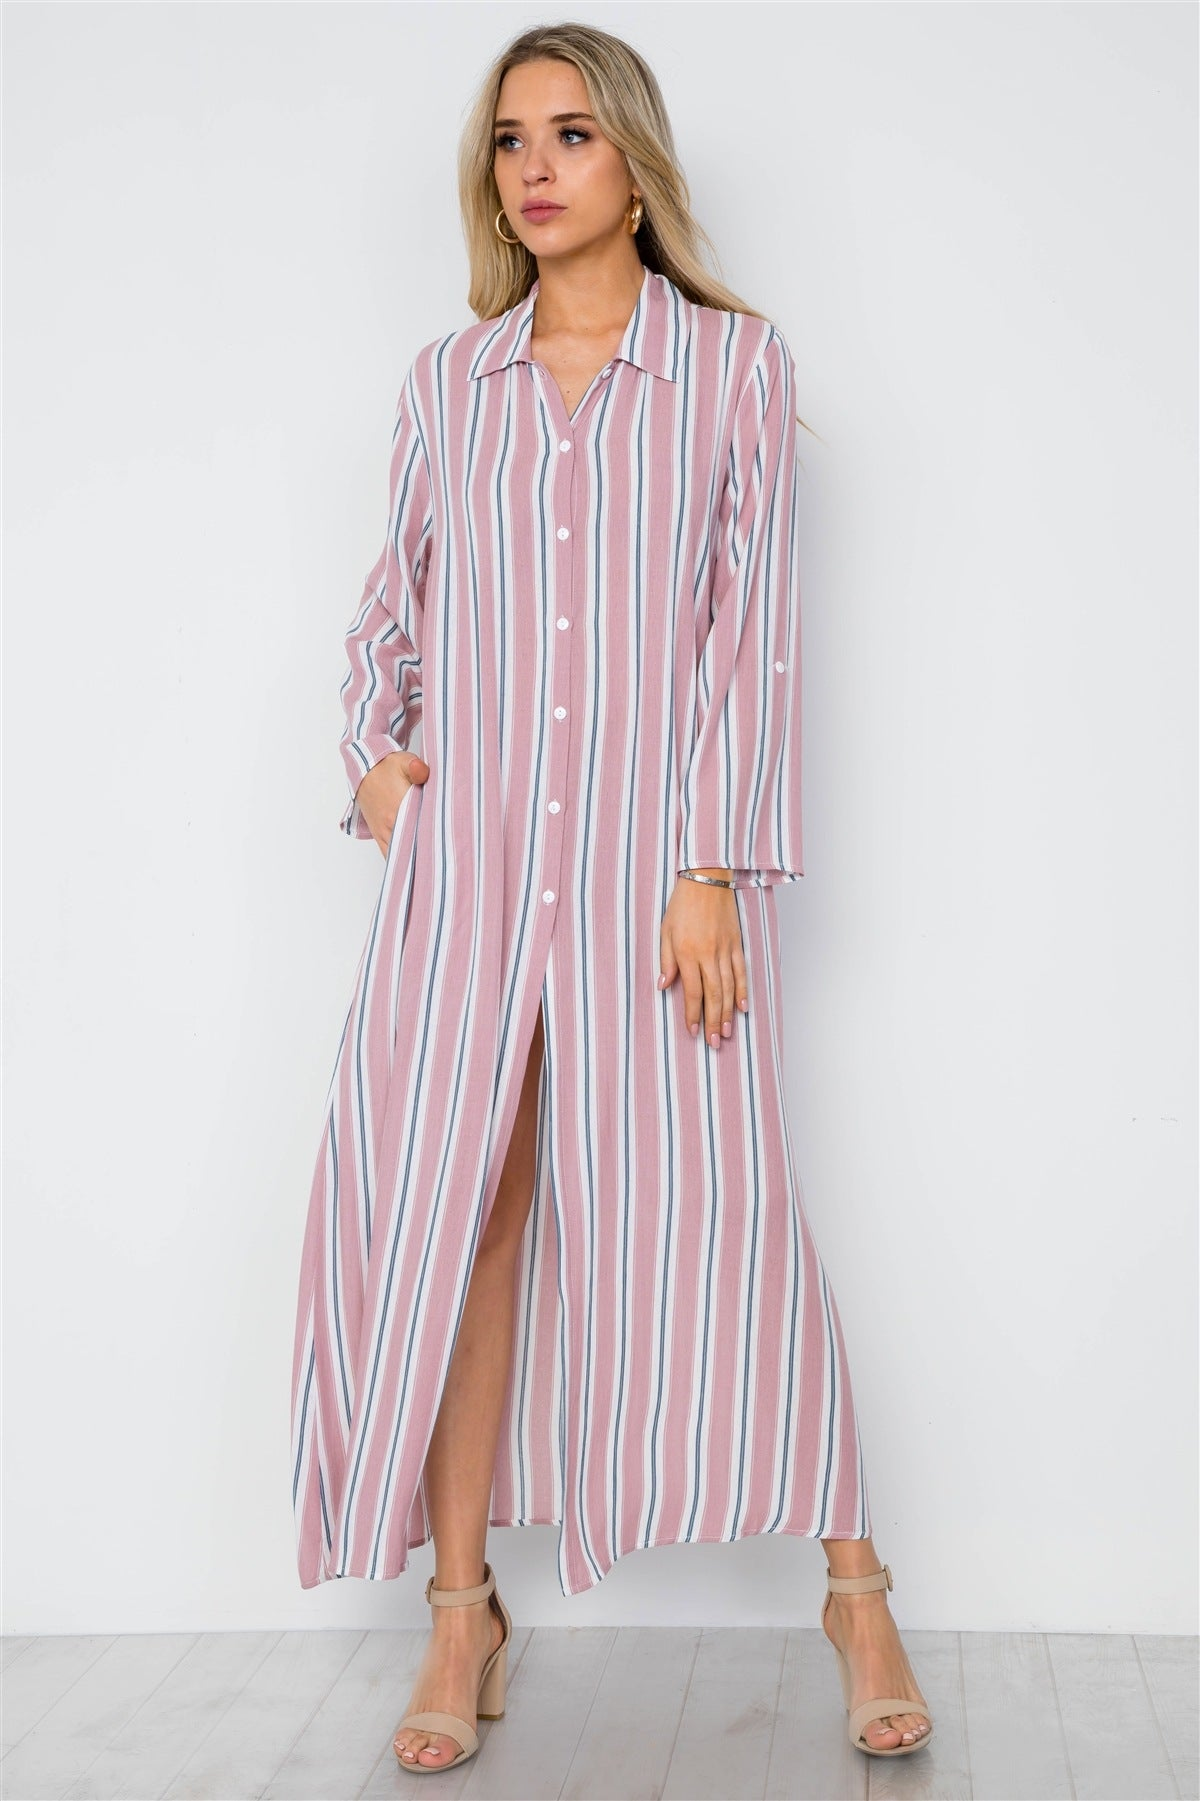 Mauve Multi Stripe Button Down Dress Maxi Blouse Shirt